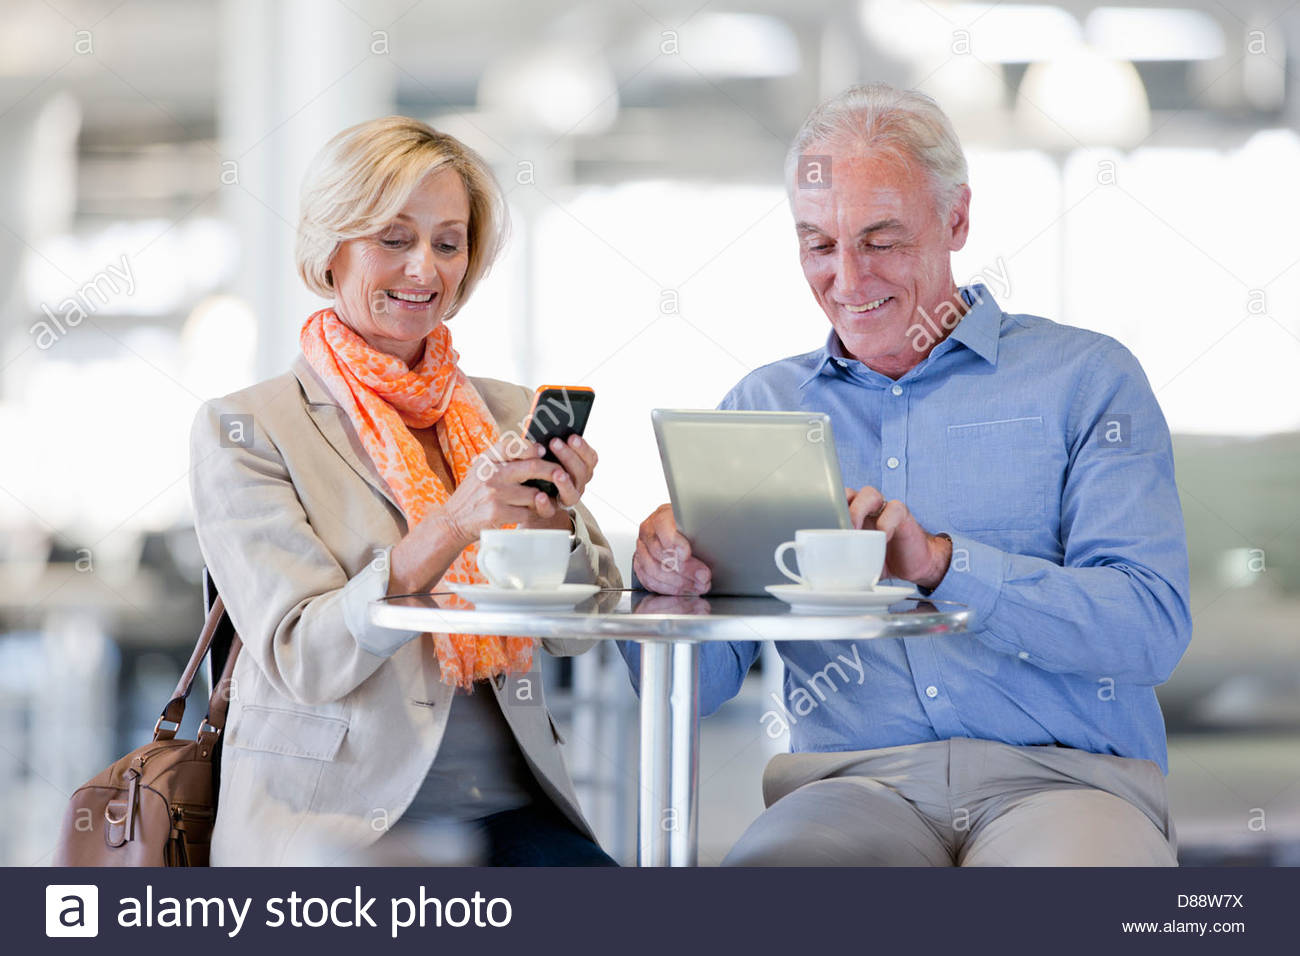 Smiling couple using cell phone and digital tablet at cafe table - Stock Image